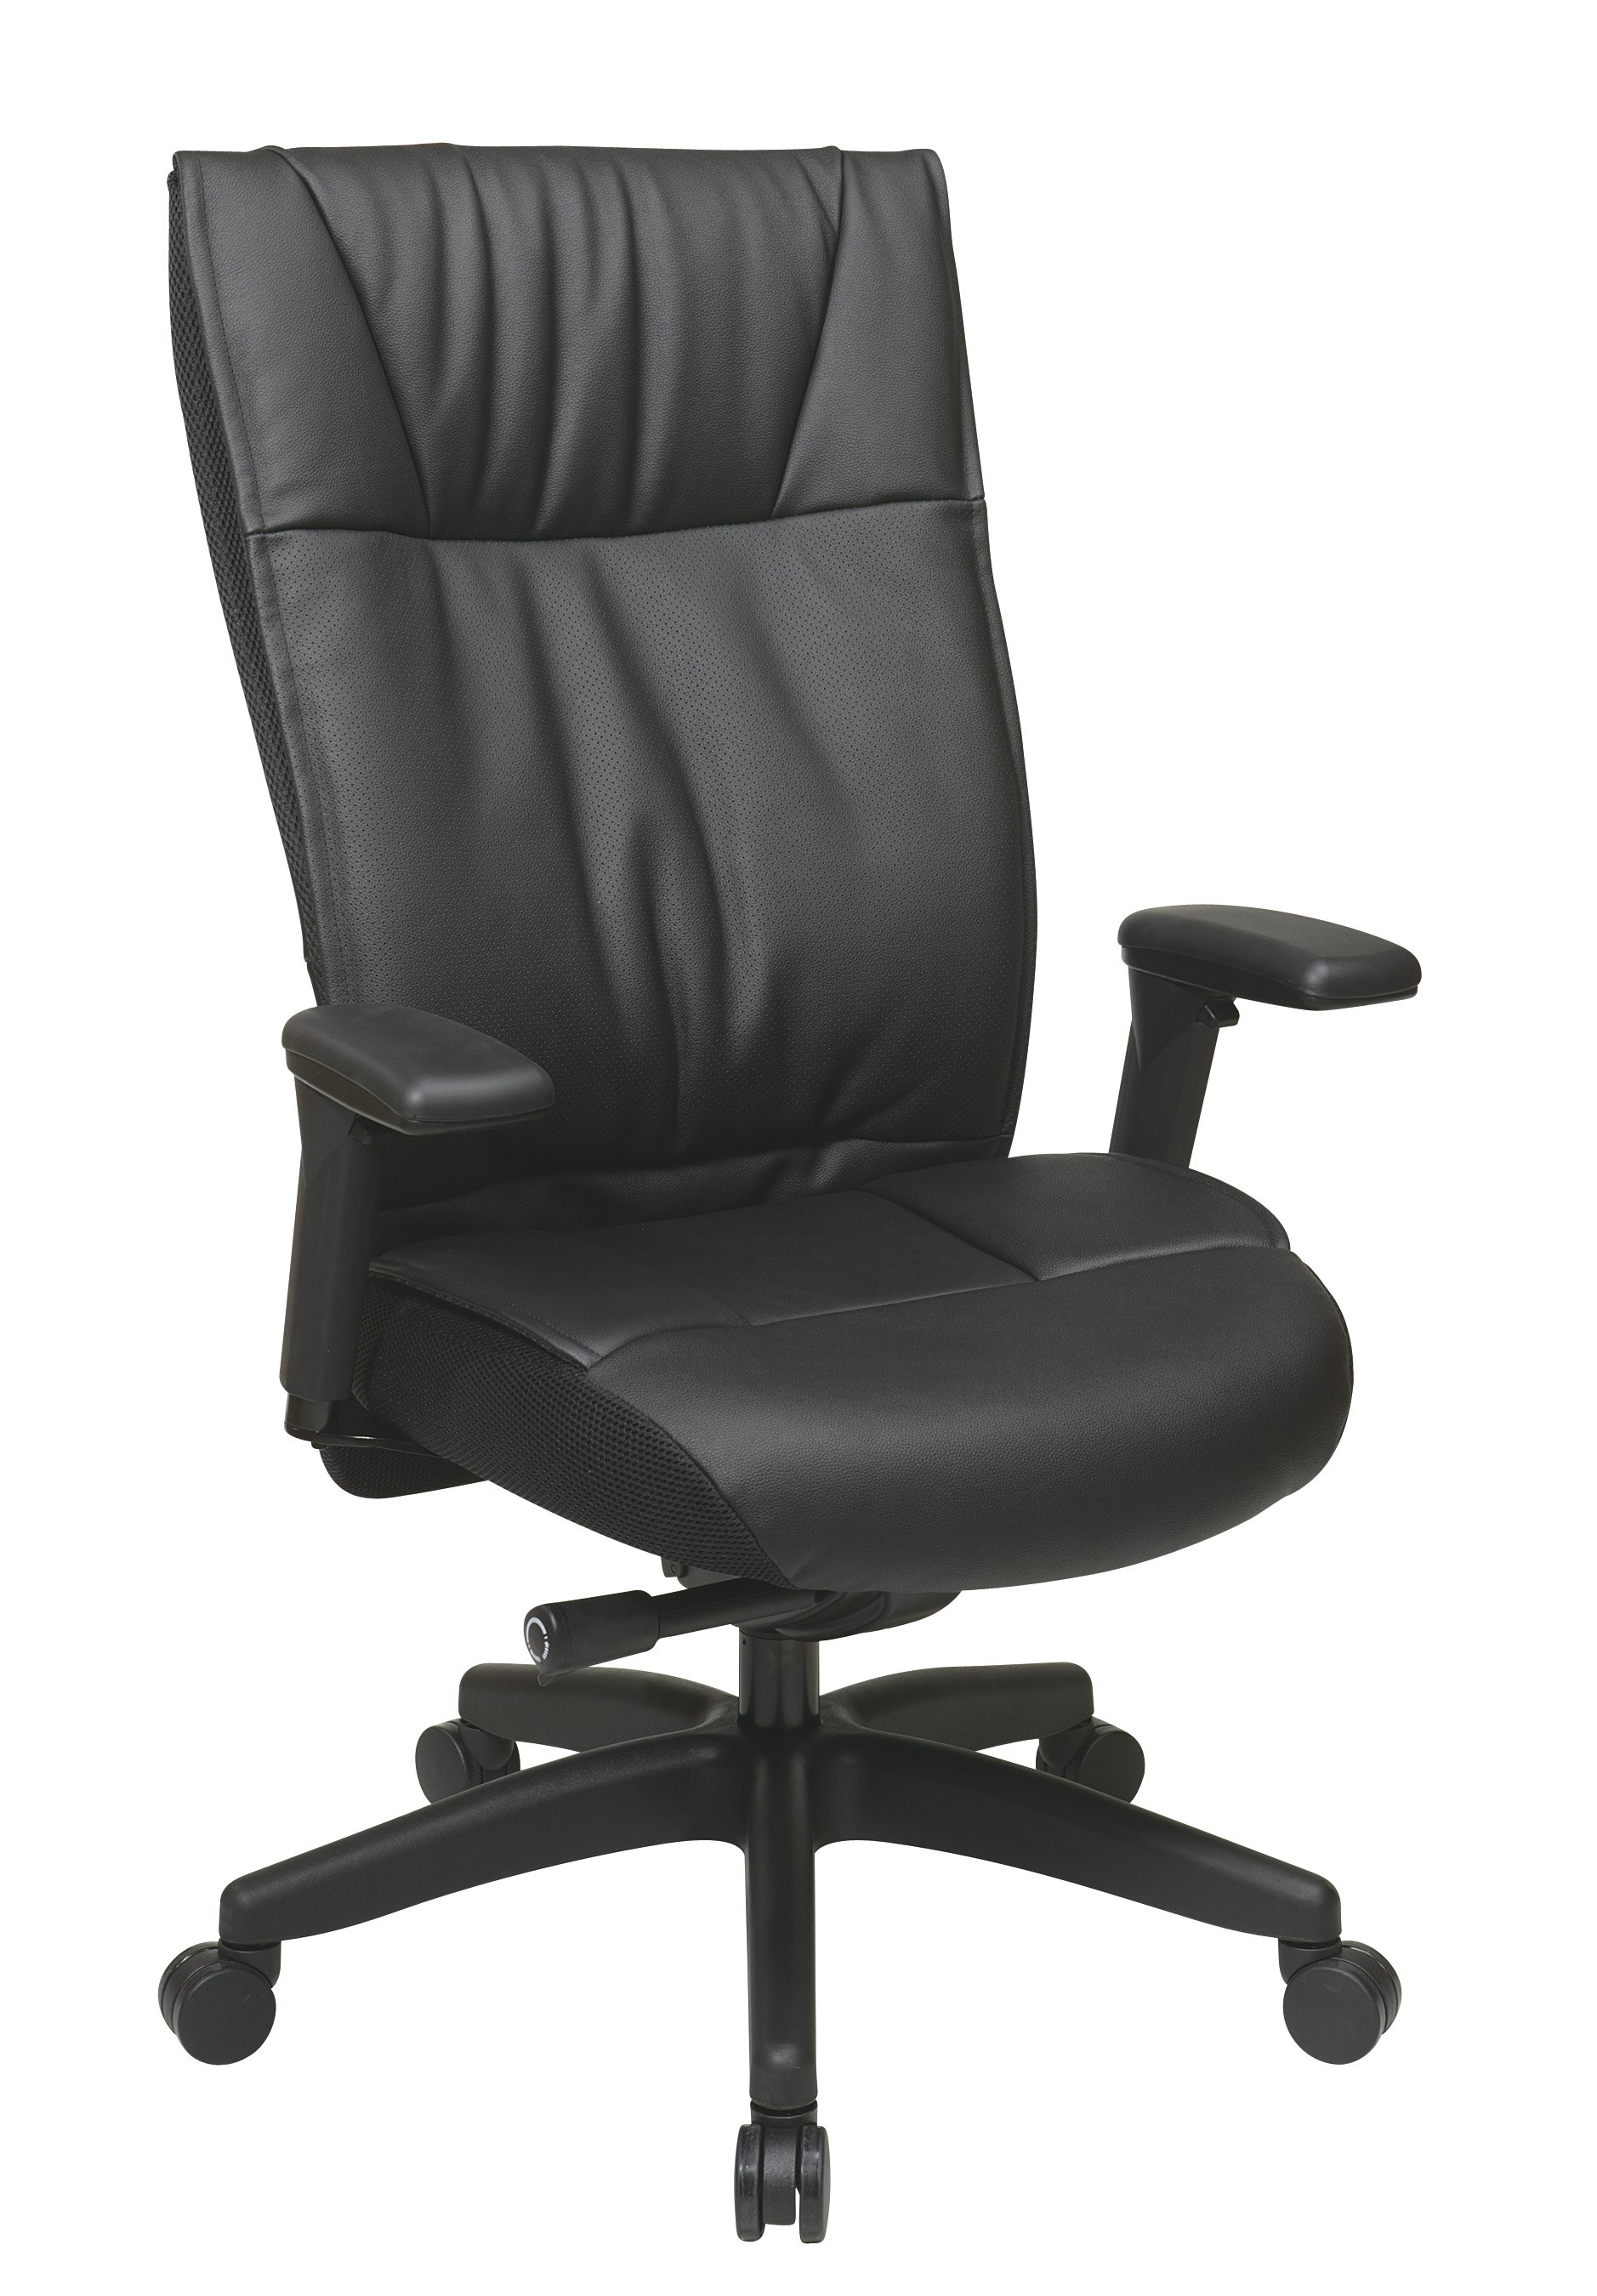 contemporary leather executive chair by space seating office star. Black Bedroom Furniture Sets. Home Design Ideas